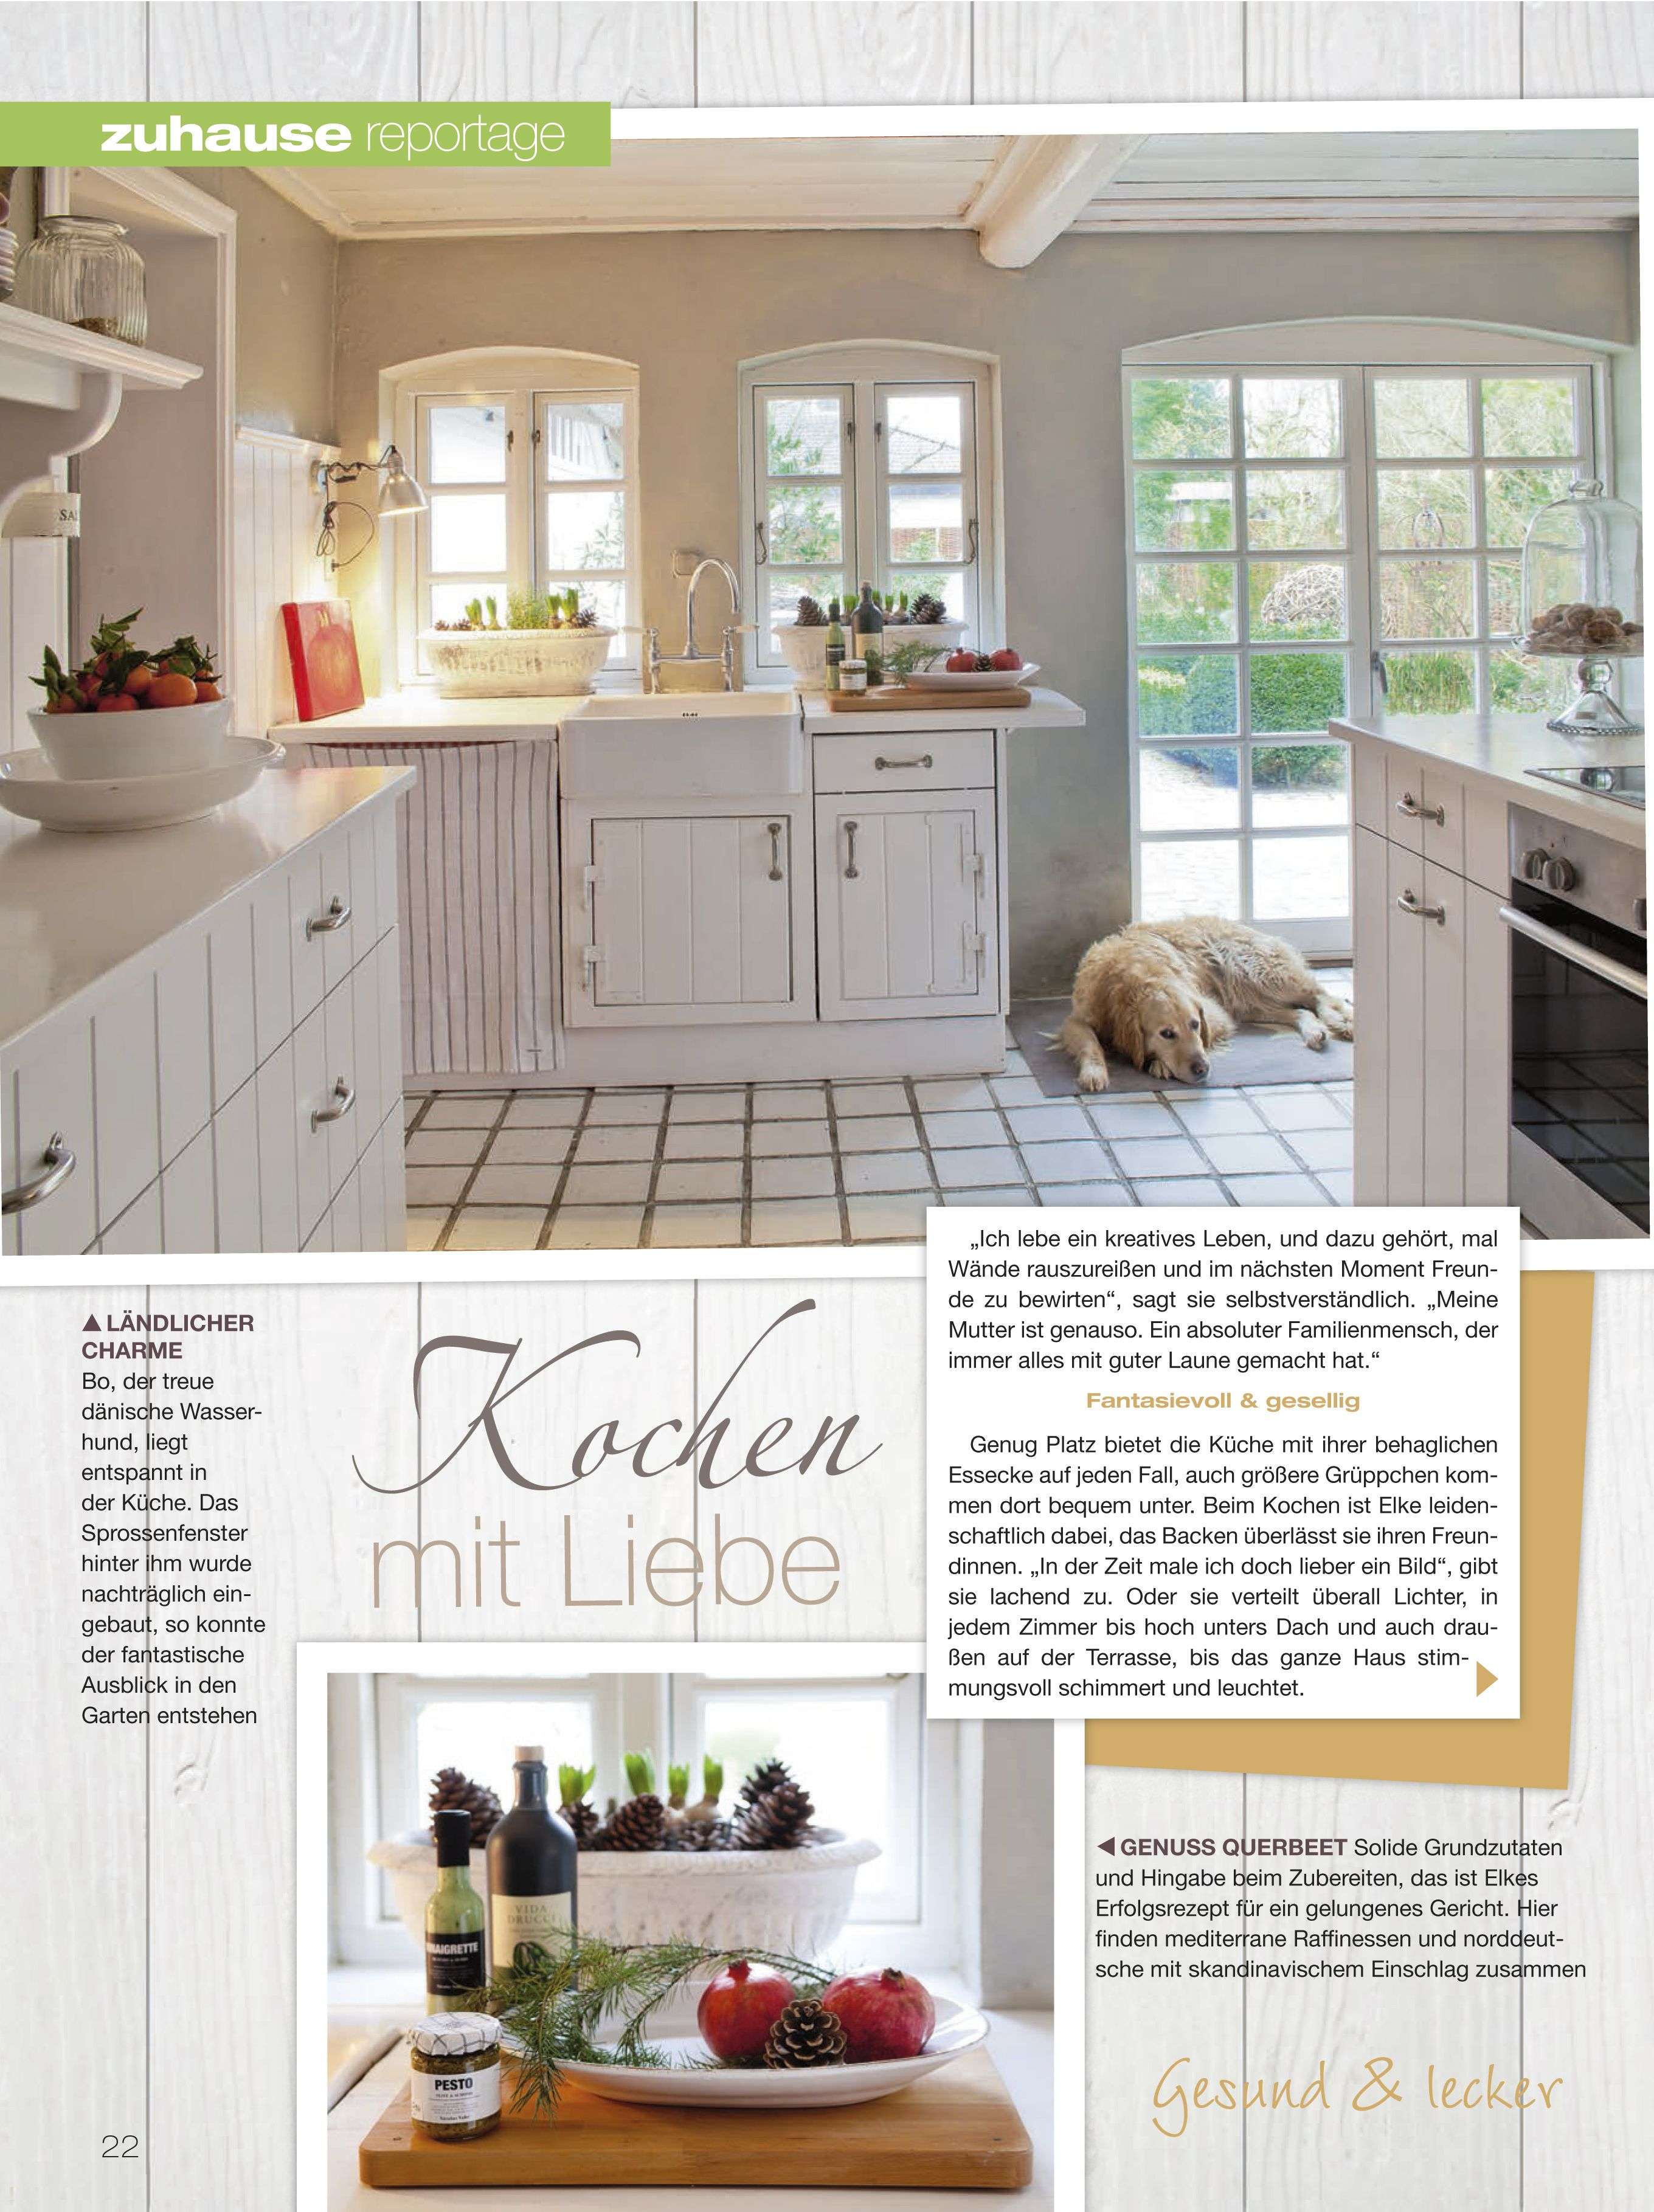 lisa wohnreportage bei elke reuter sch nes heim. Black Bedroom Furniture Sets. Home Design Ideas